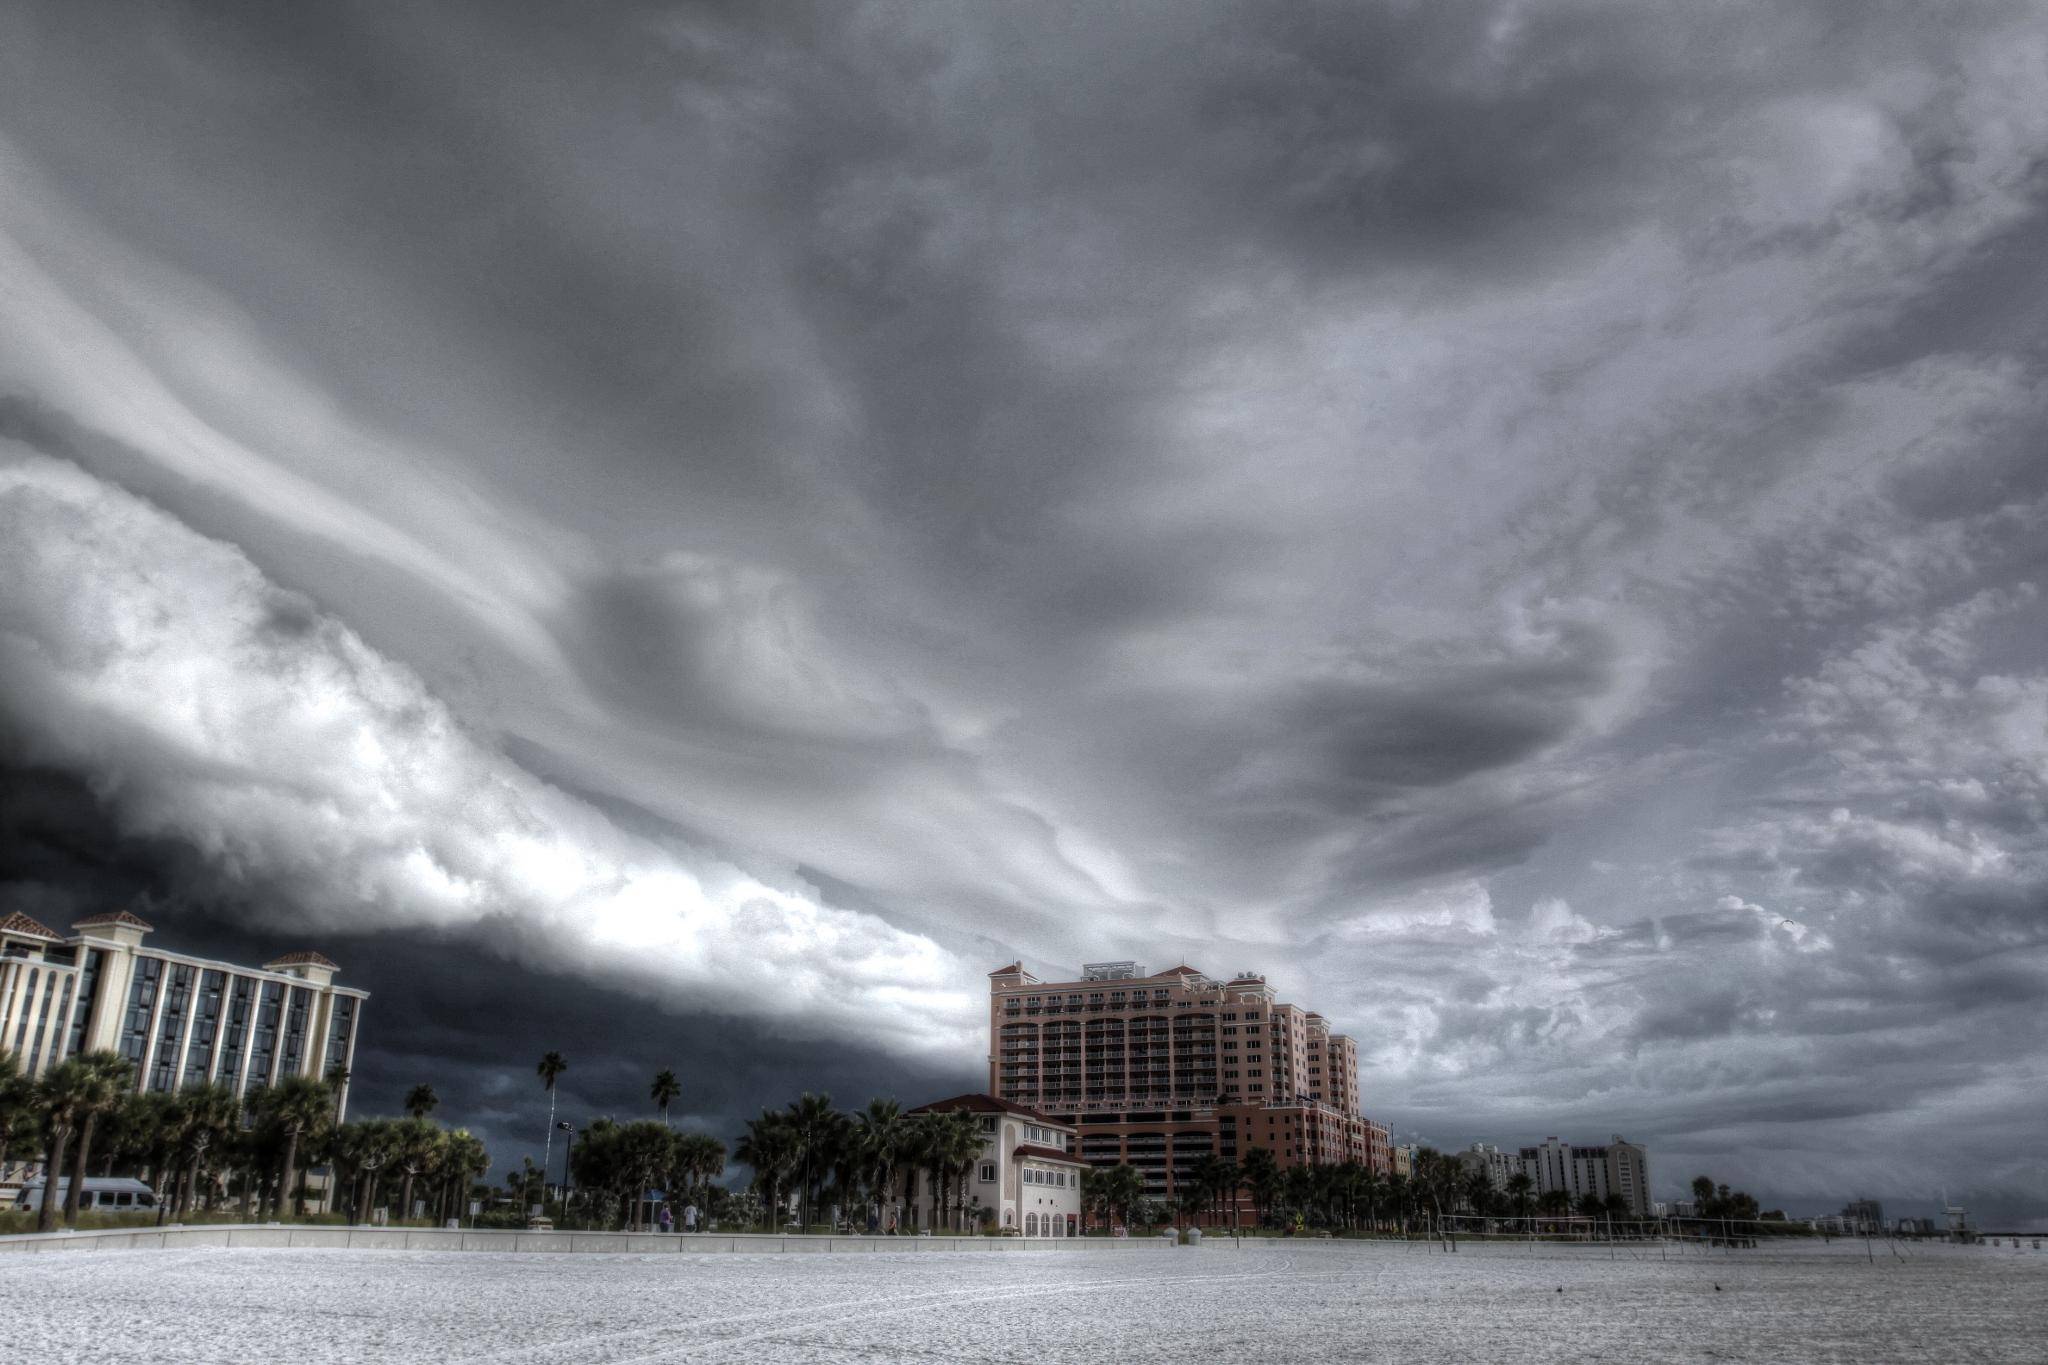 storm front by Melanie Smith